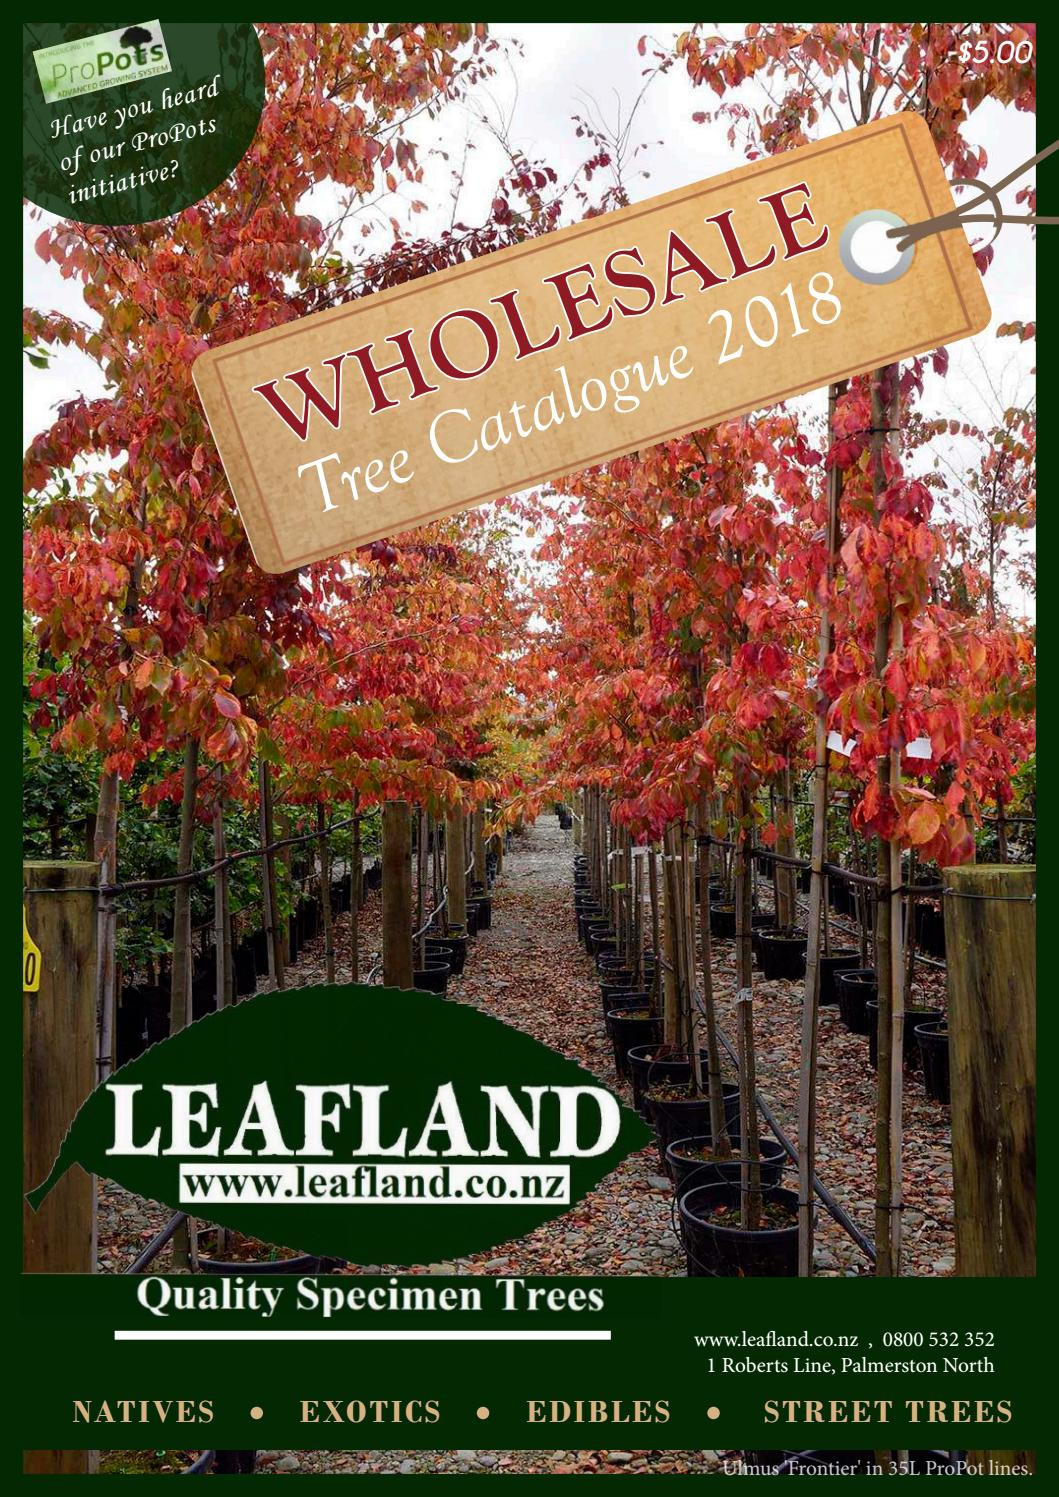 green vase zelkova for sale of leafland 2018 catalogue by leafland quality specimen trees issuu for page 1